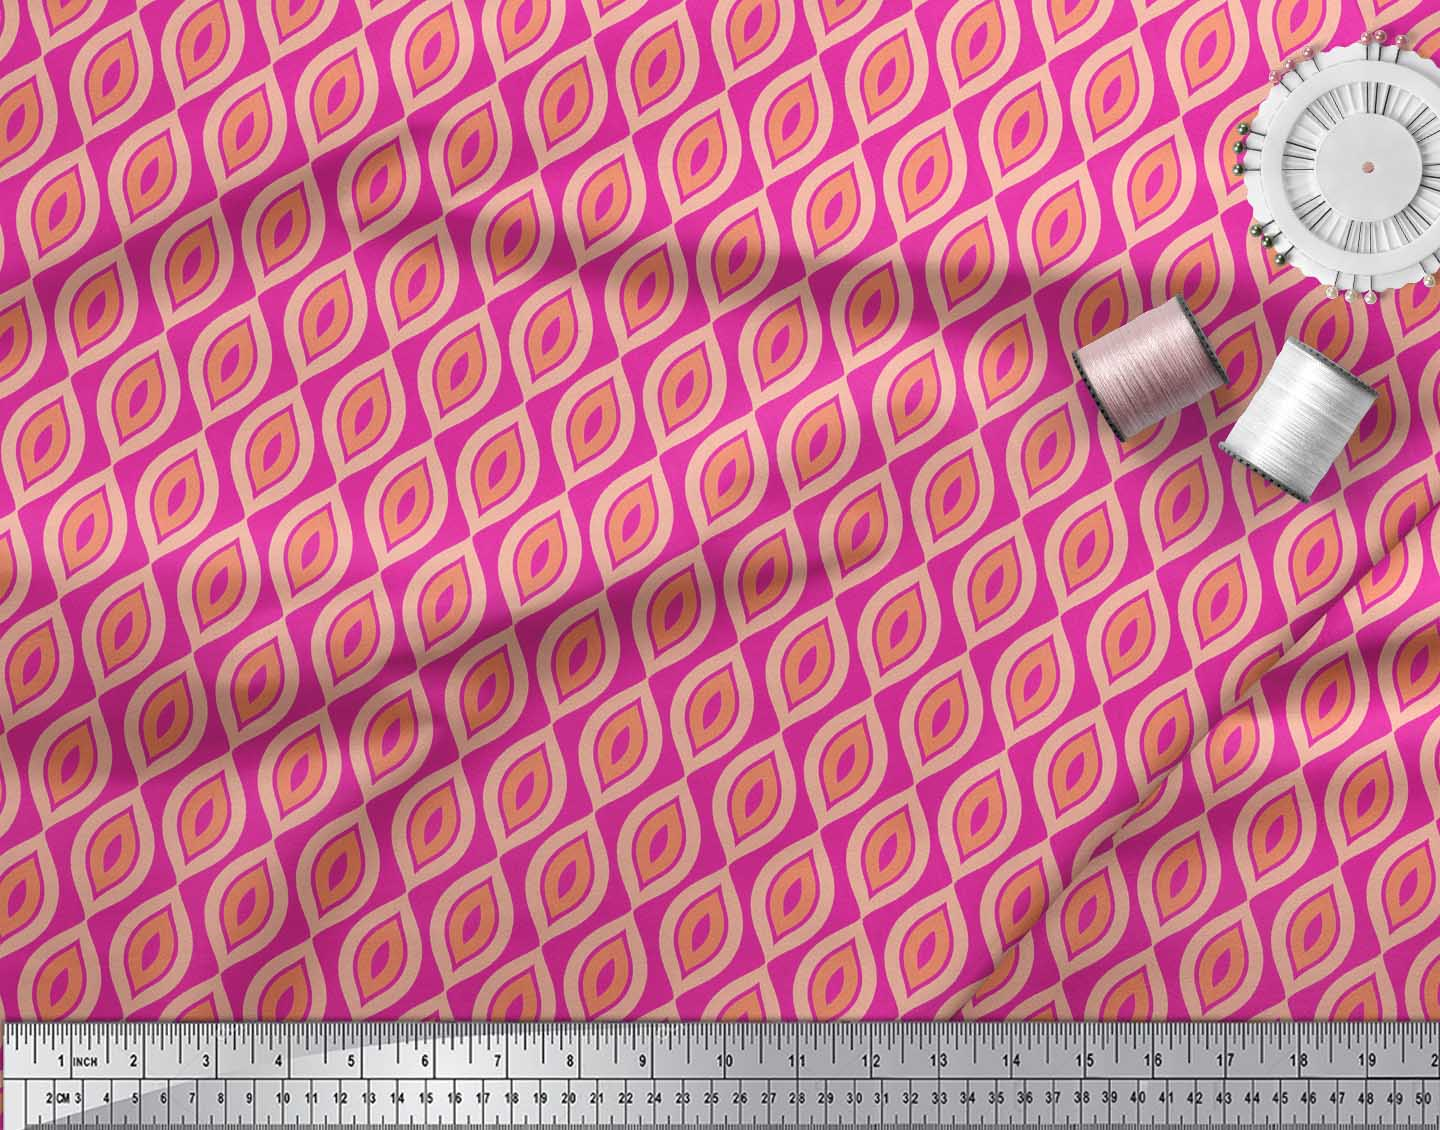 Soimoi-Pink-Cotton-Poplin-Fabric-Ogee-Geometric-Print-Fabric-by-2gU thumbnail 3